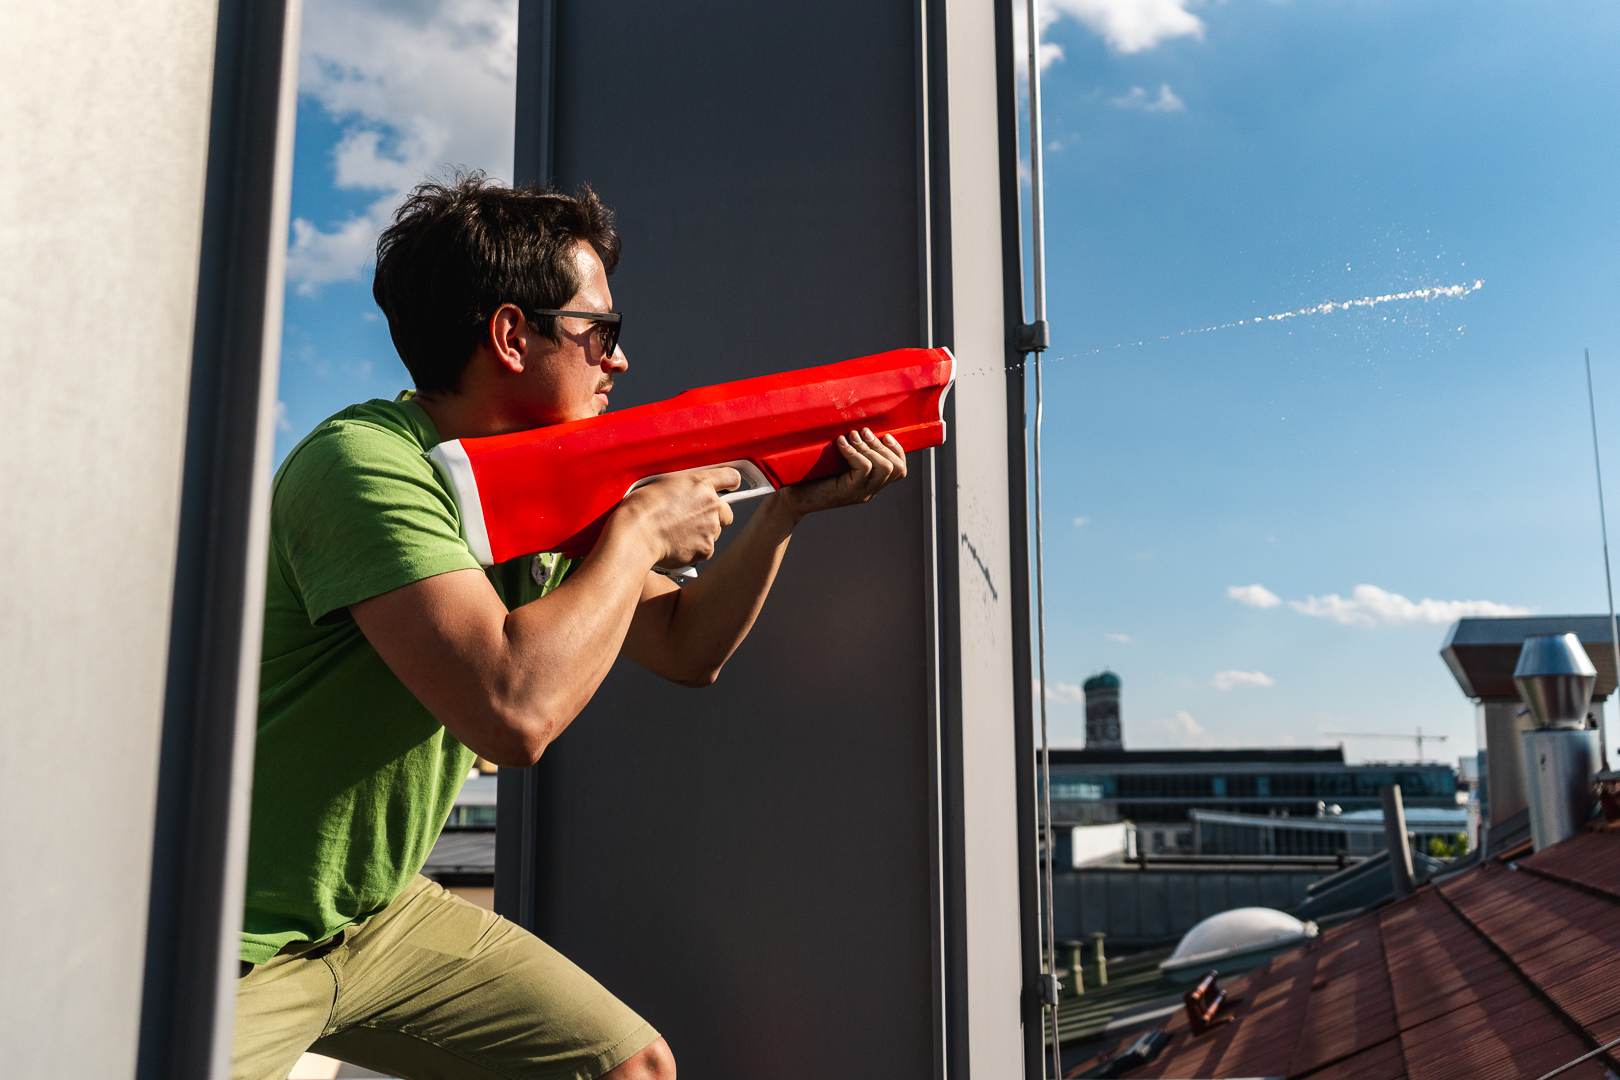 The Spyra One water gun shoots water bullets